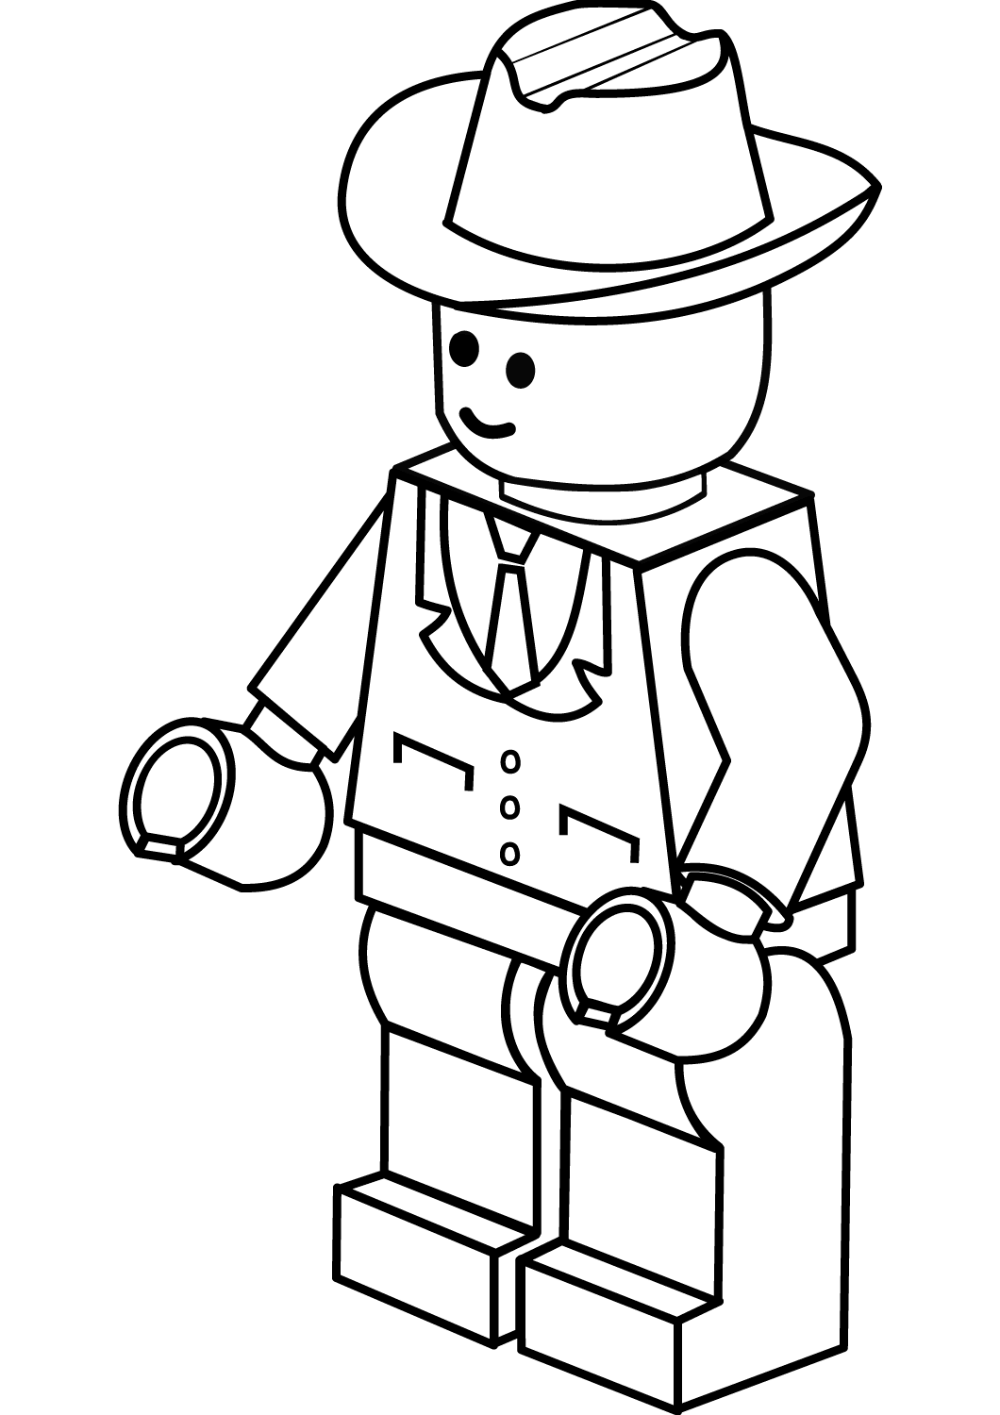 lego colouring in pictures lego coloring pages best coloring pages for kids lego colouring pictures in